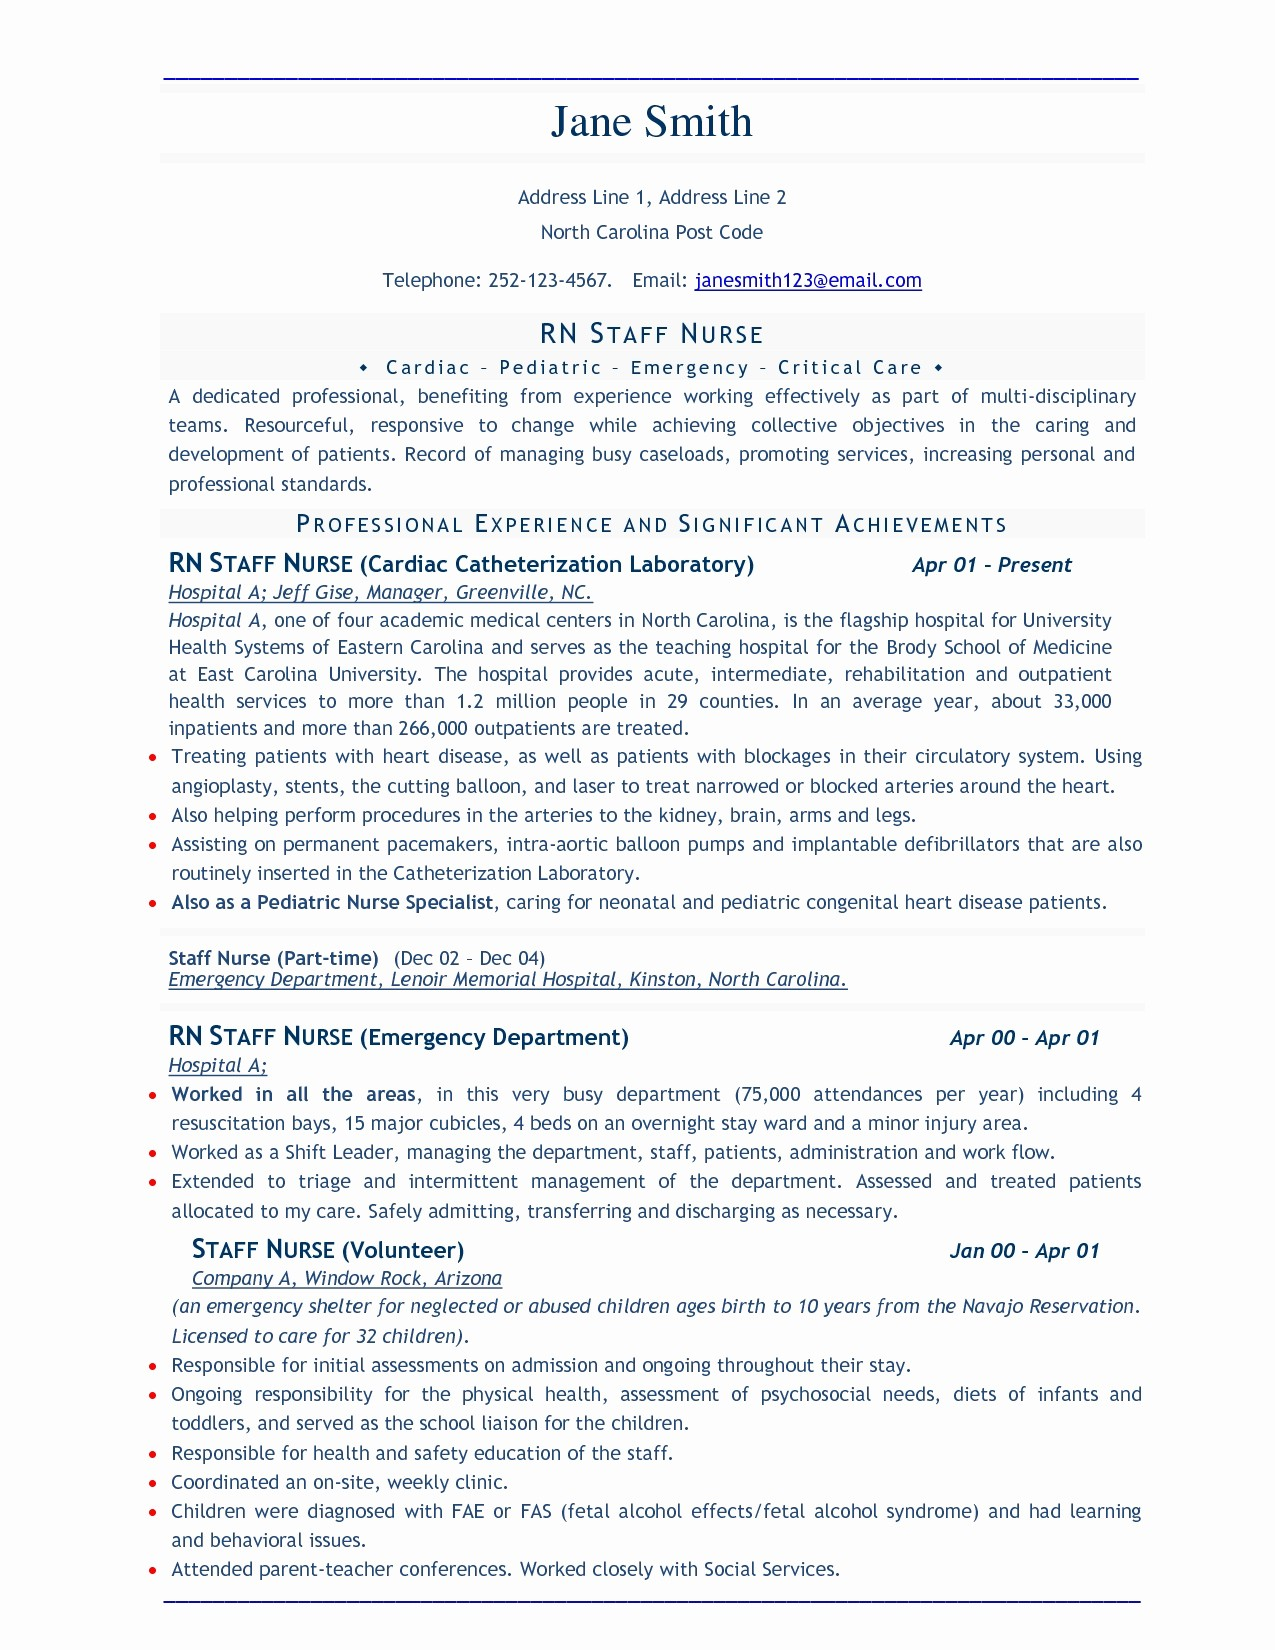 Download Free Professional Resume Templates Awesome Downloadable Resume Templates